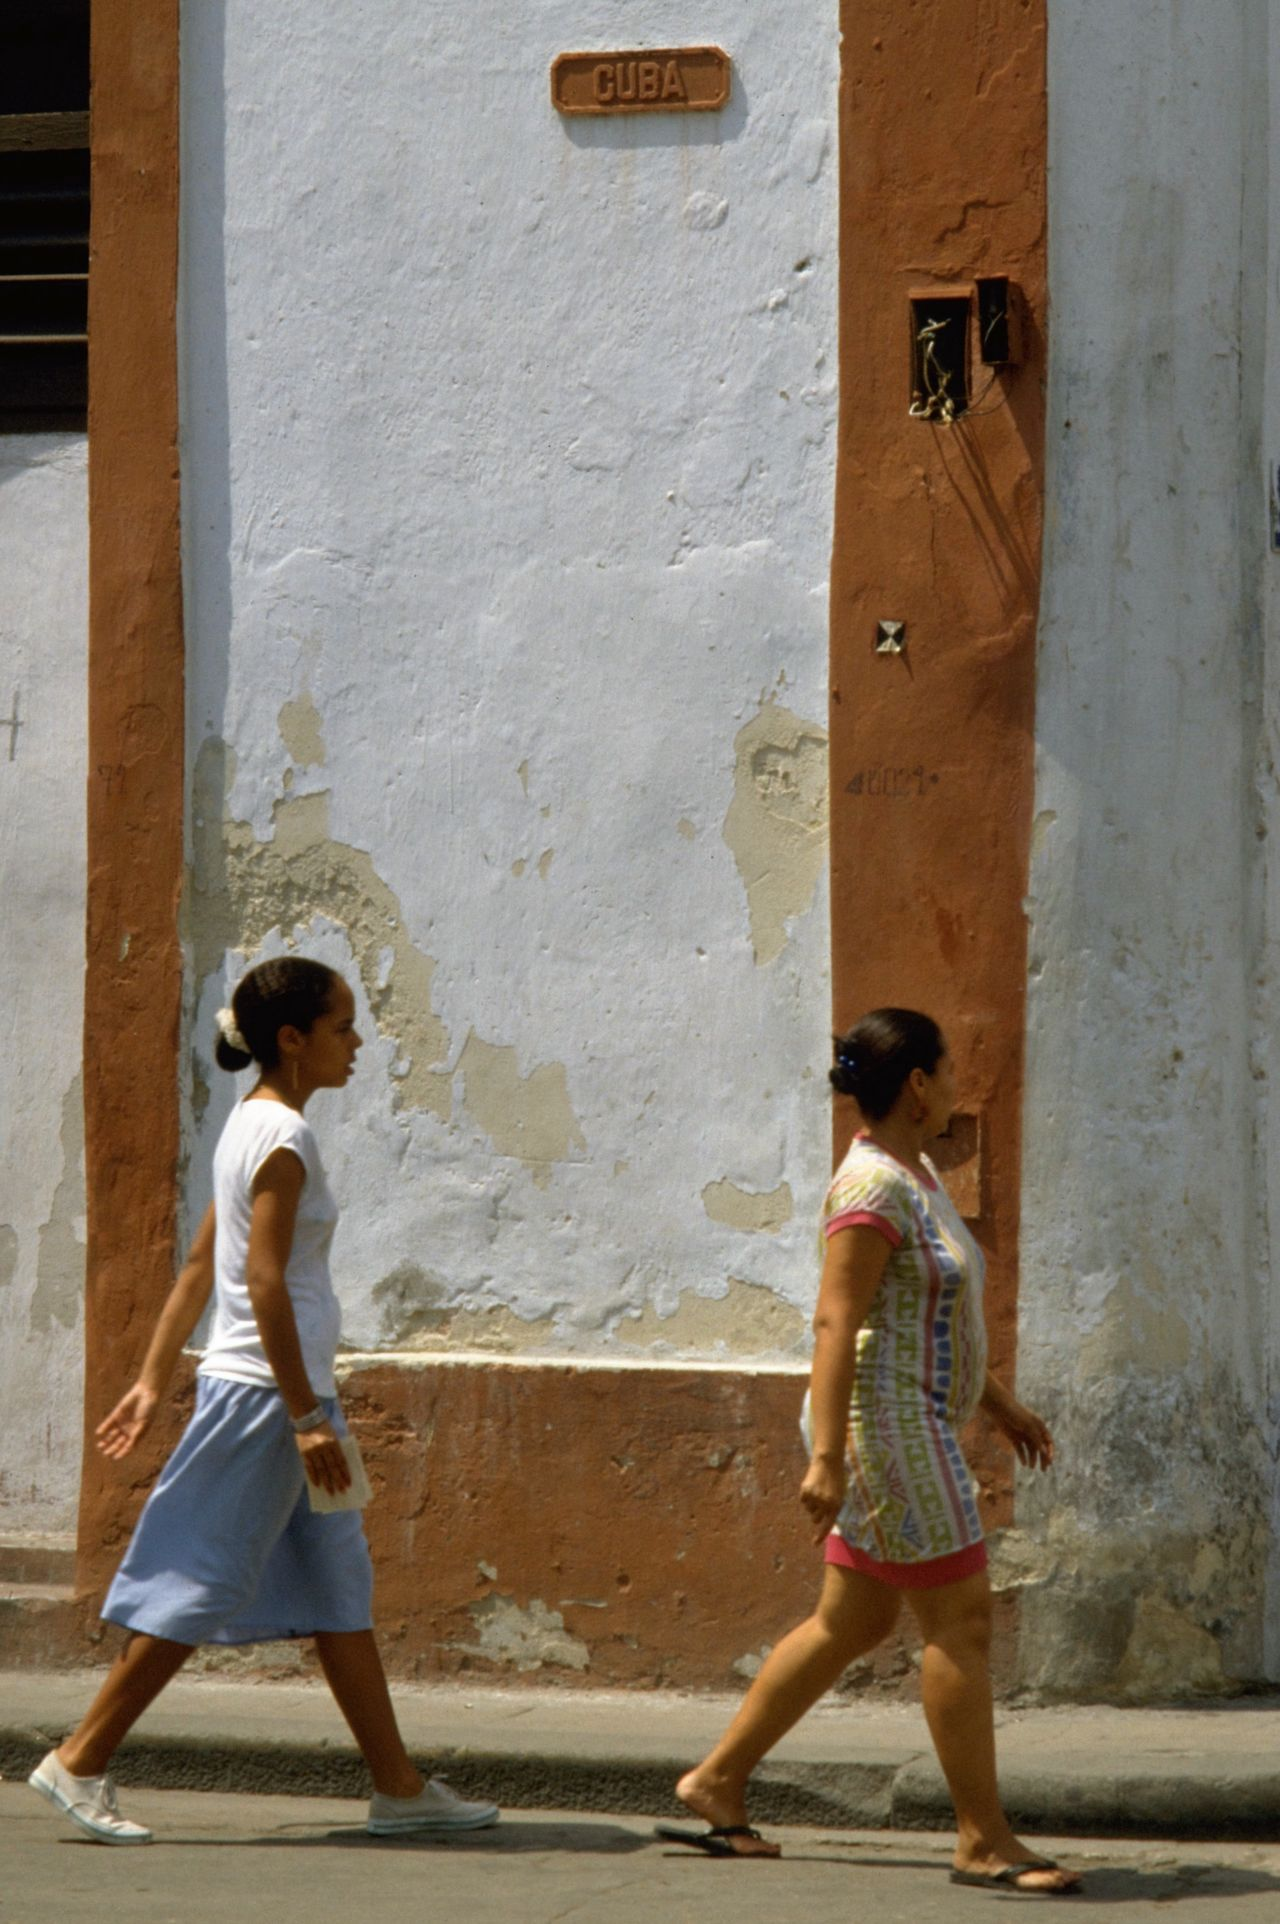 Two Cuban ladies walking down Cuba Calle in Havana, Republic of Cuba. Cuba is the largest island in the Caribbean, and the second-most populous after Hispaniola (Dominican Republic and Haiti). Havana features some wonderful Spanish colonial architecture within its 16th-century core, Old Havana. Paint may be peeling off the walls and street lights don't always work but there are plenty of photo opportunities for street photographers with an eye for the candid shot. http://pics.travelnotes.org Calle Candid Caribbean Casual Cuba Cuban Cubano Havana Islands In The Caribbean Latin America Latinos Michel Guntern Old Town Plain People And Places Simplicity Street Life Street Photography Travel Travel Photography Travel Photos Travel Pics Up Close Street Photography Women Snap A Stranger